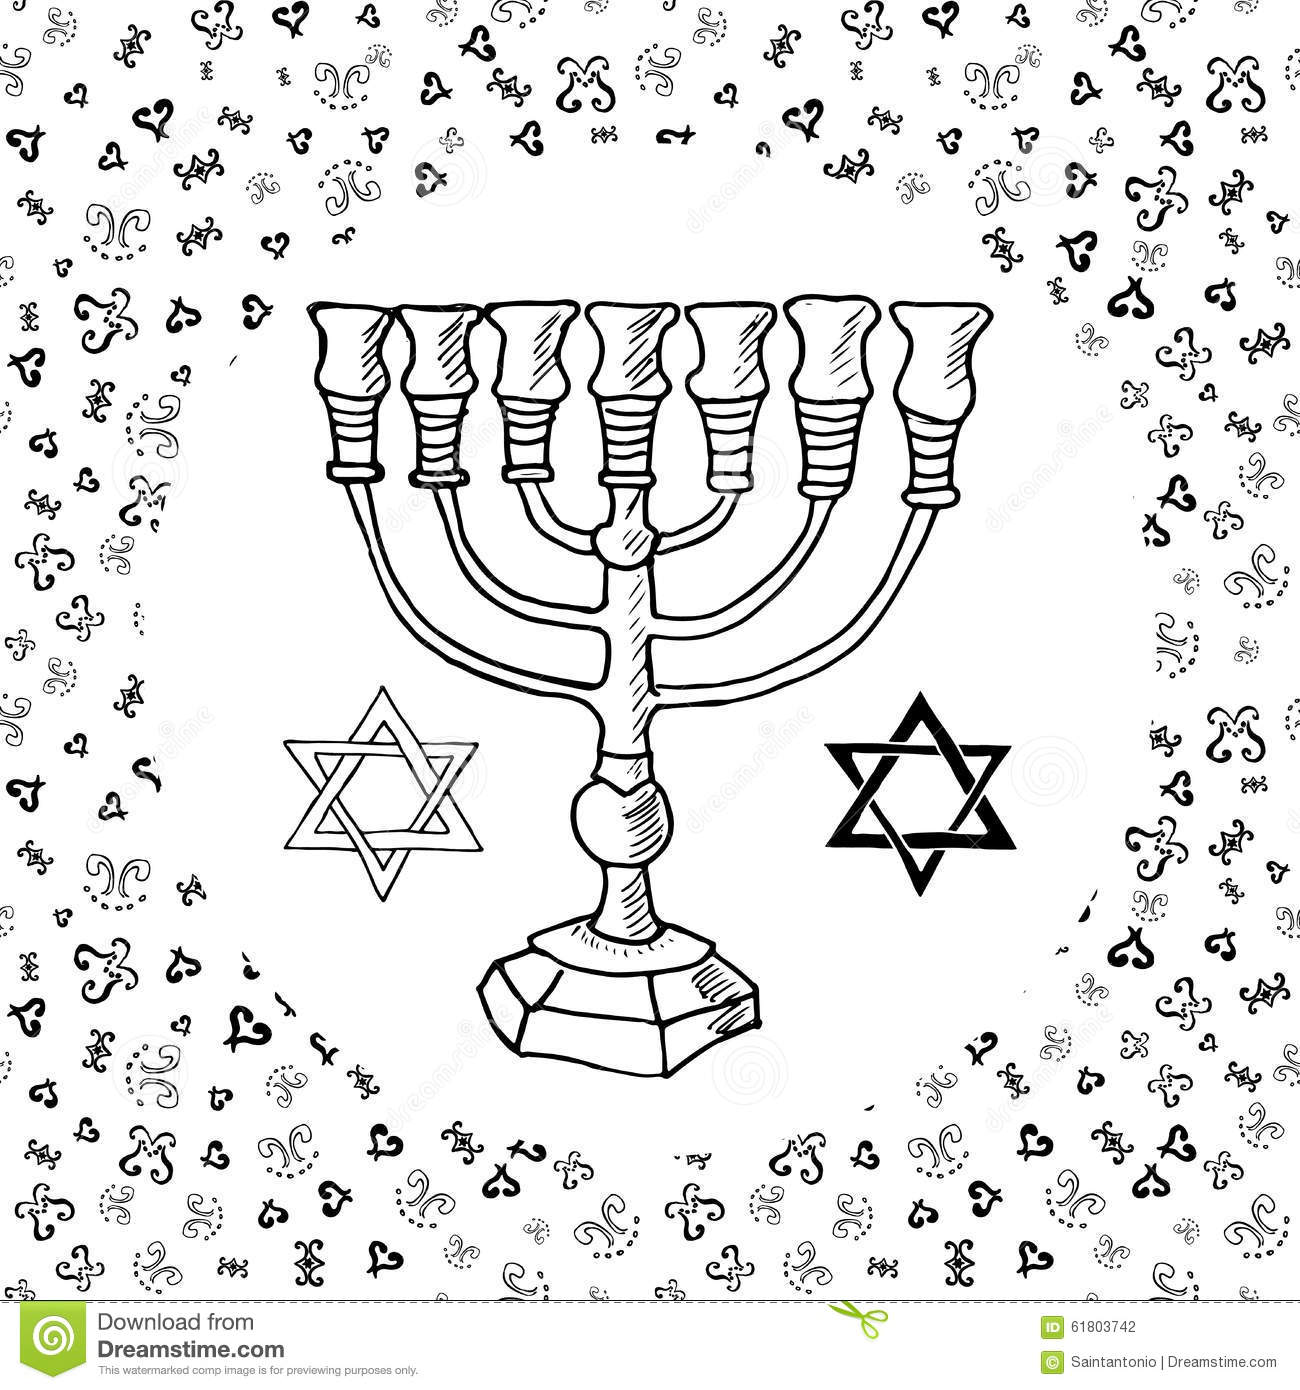 Menorah Jewish Hanukkah Candle Holder Royalty Free Stock